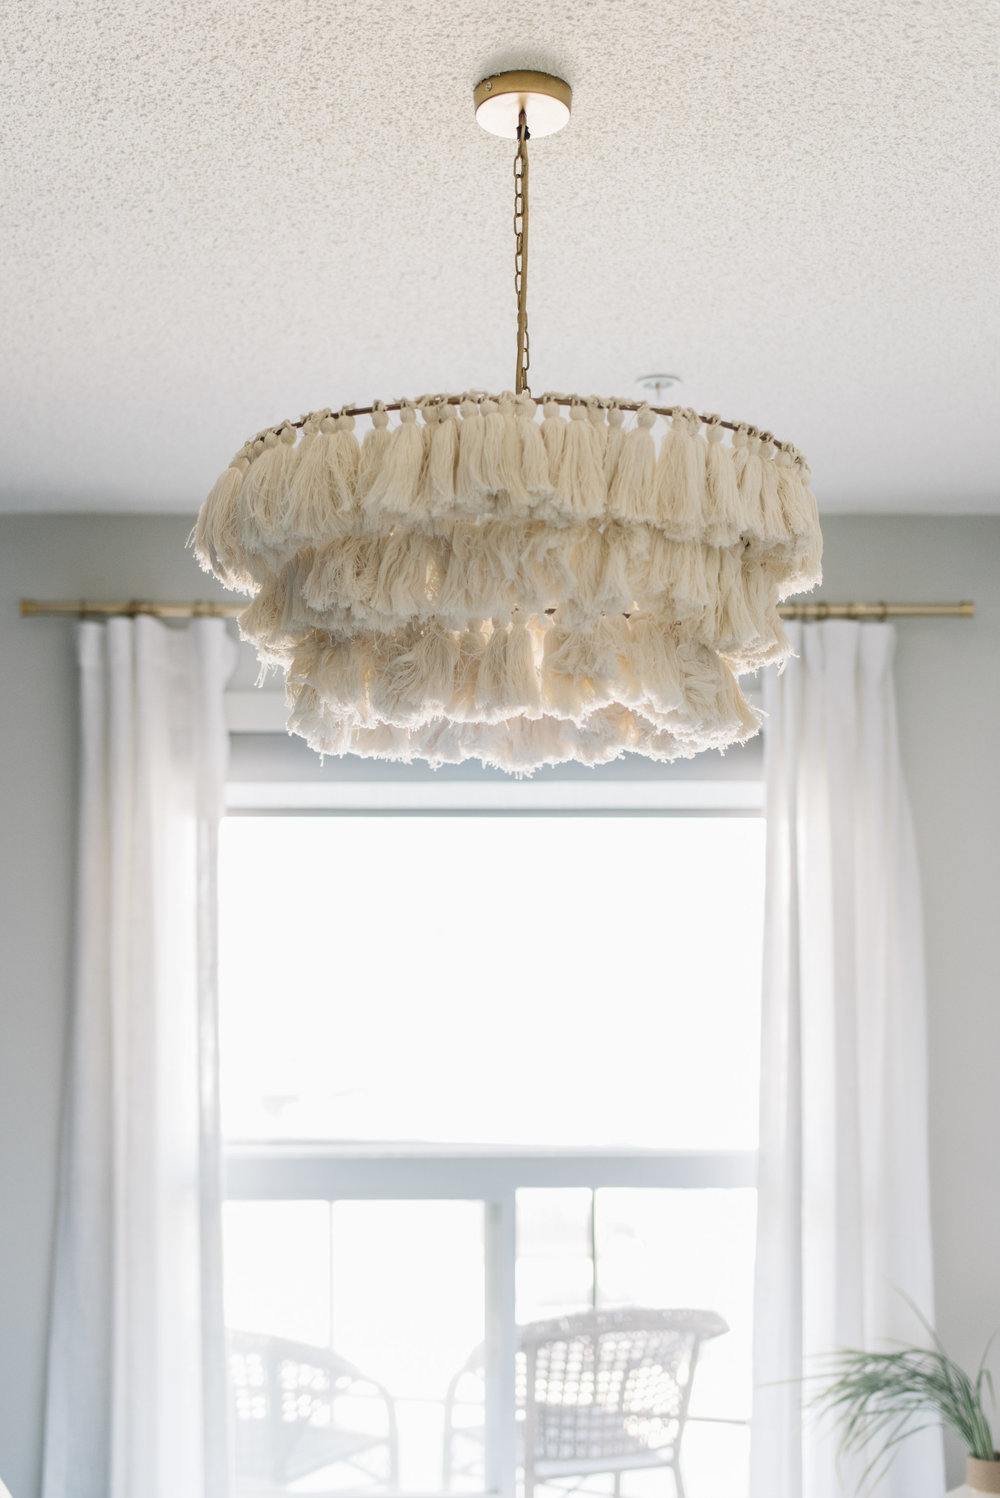 jungalow light pendant, tassel light fixture